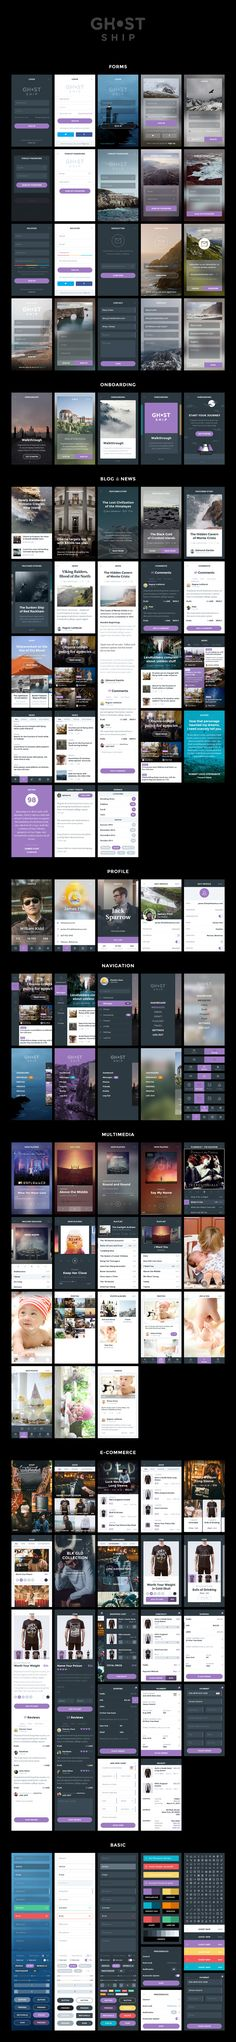 Ghost Ship Mobile UI Kit Published by Maan Ali